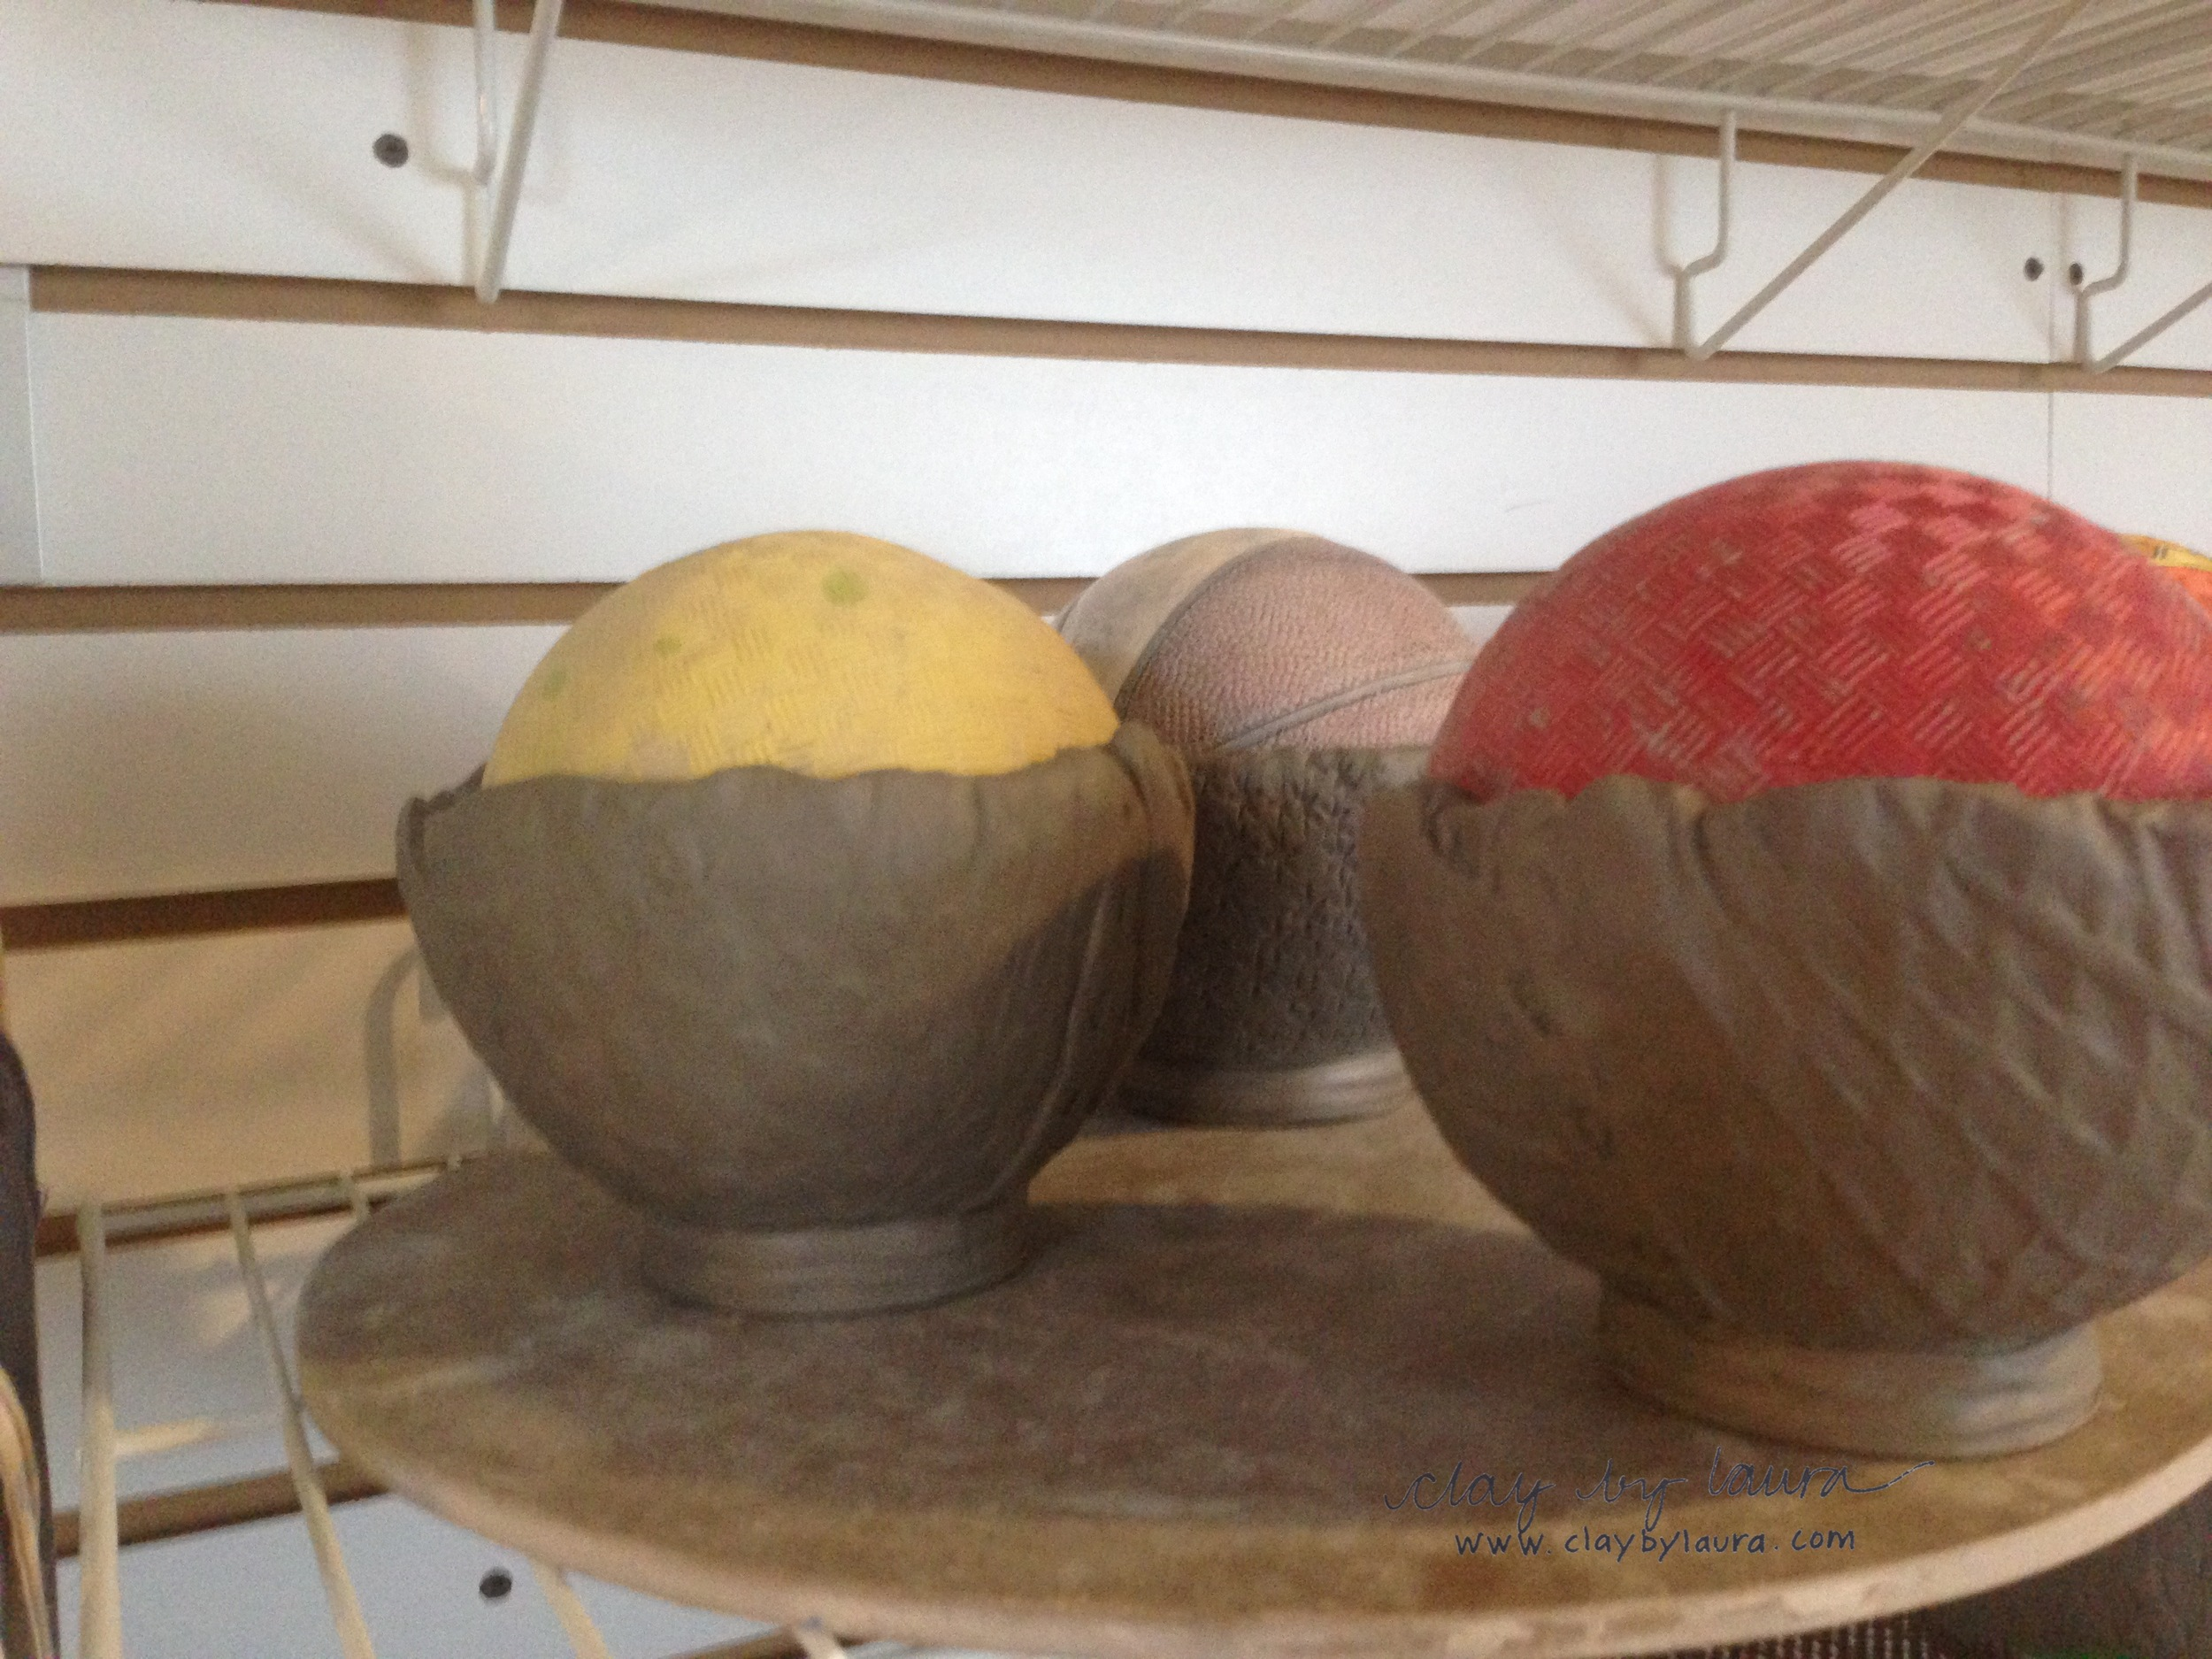 The bowls must dry and set up again before I can add to them.